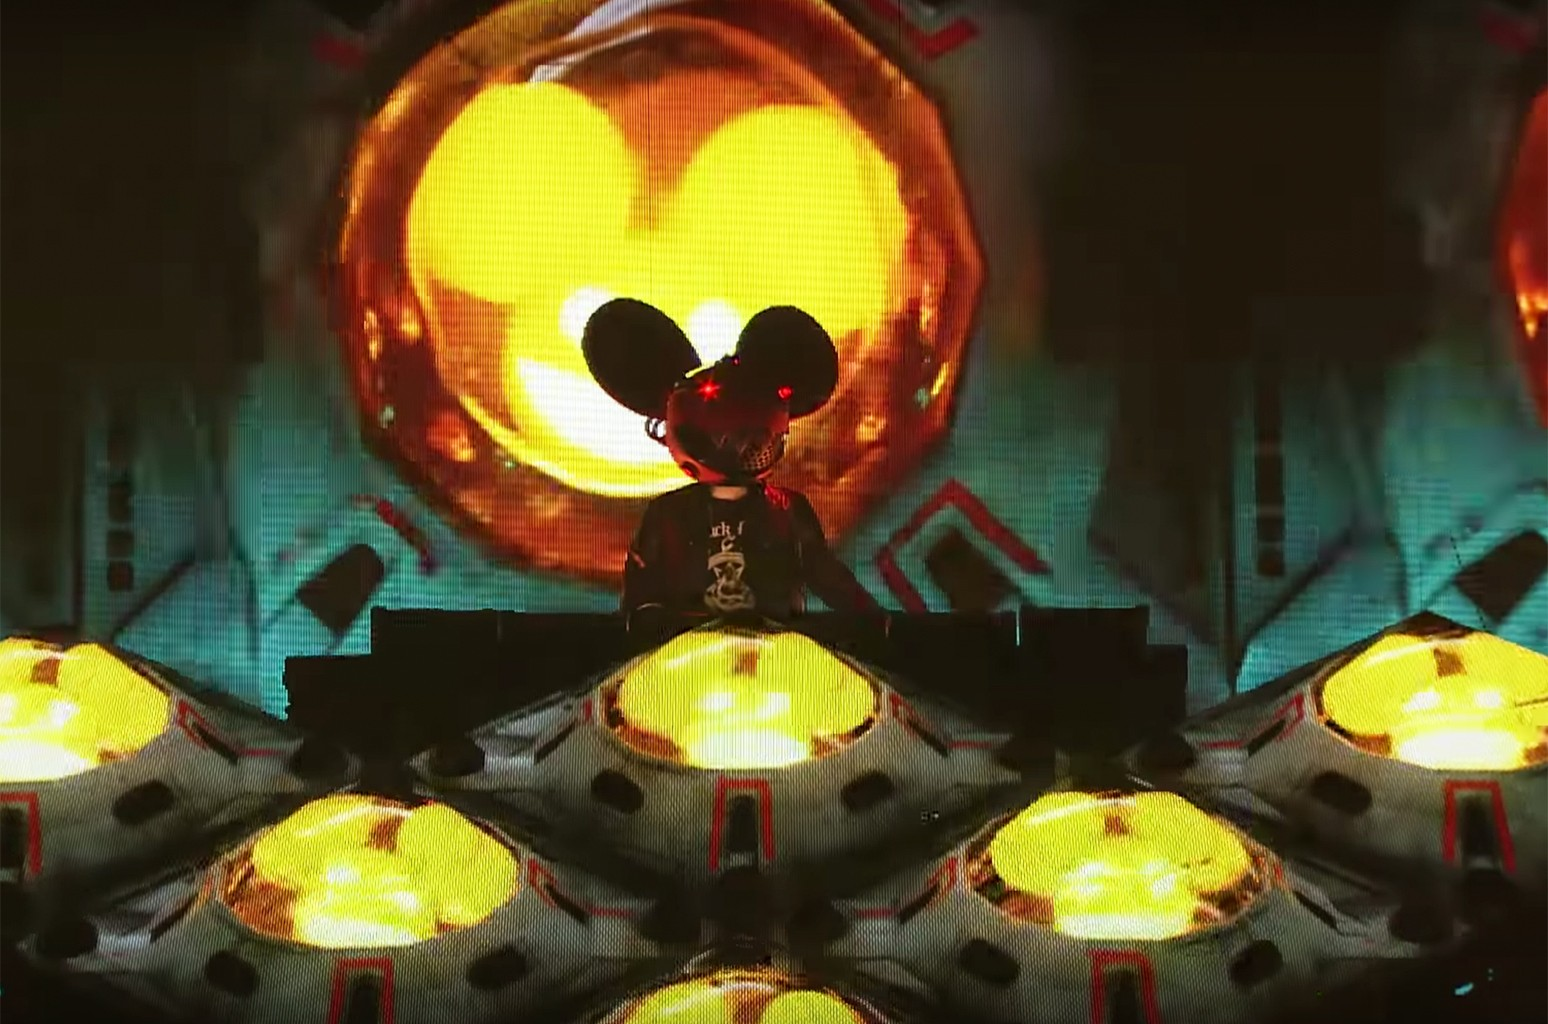 A behind the scenes look at tour visuals and production for deadmau5's upcoming Cube 2.1 tour.